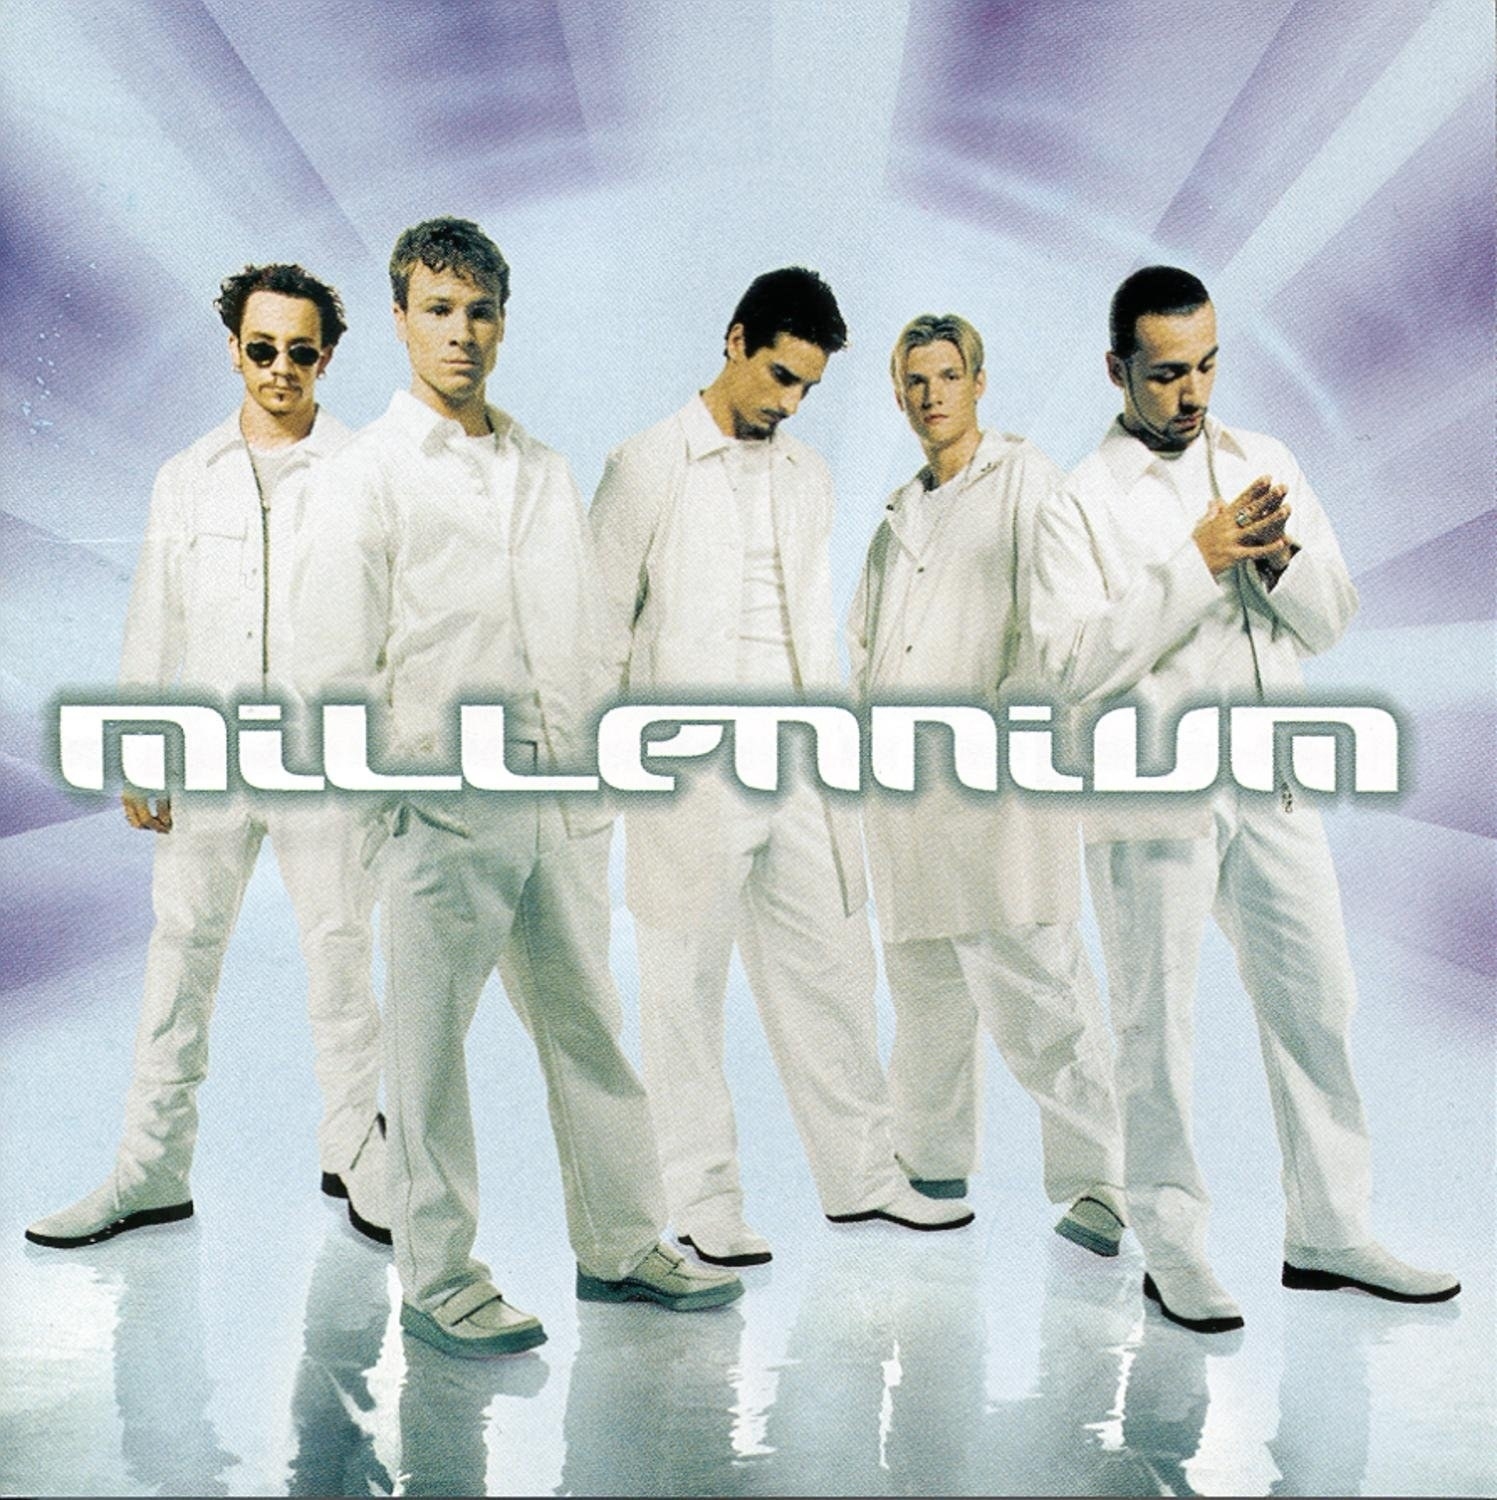 album cover of Millennium showing the Backstreet Boys standing, wearing all white